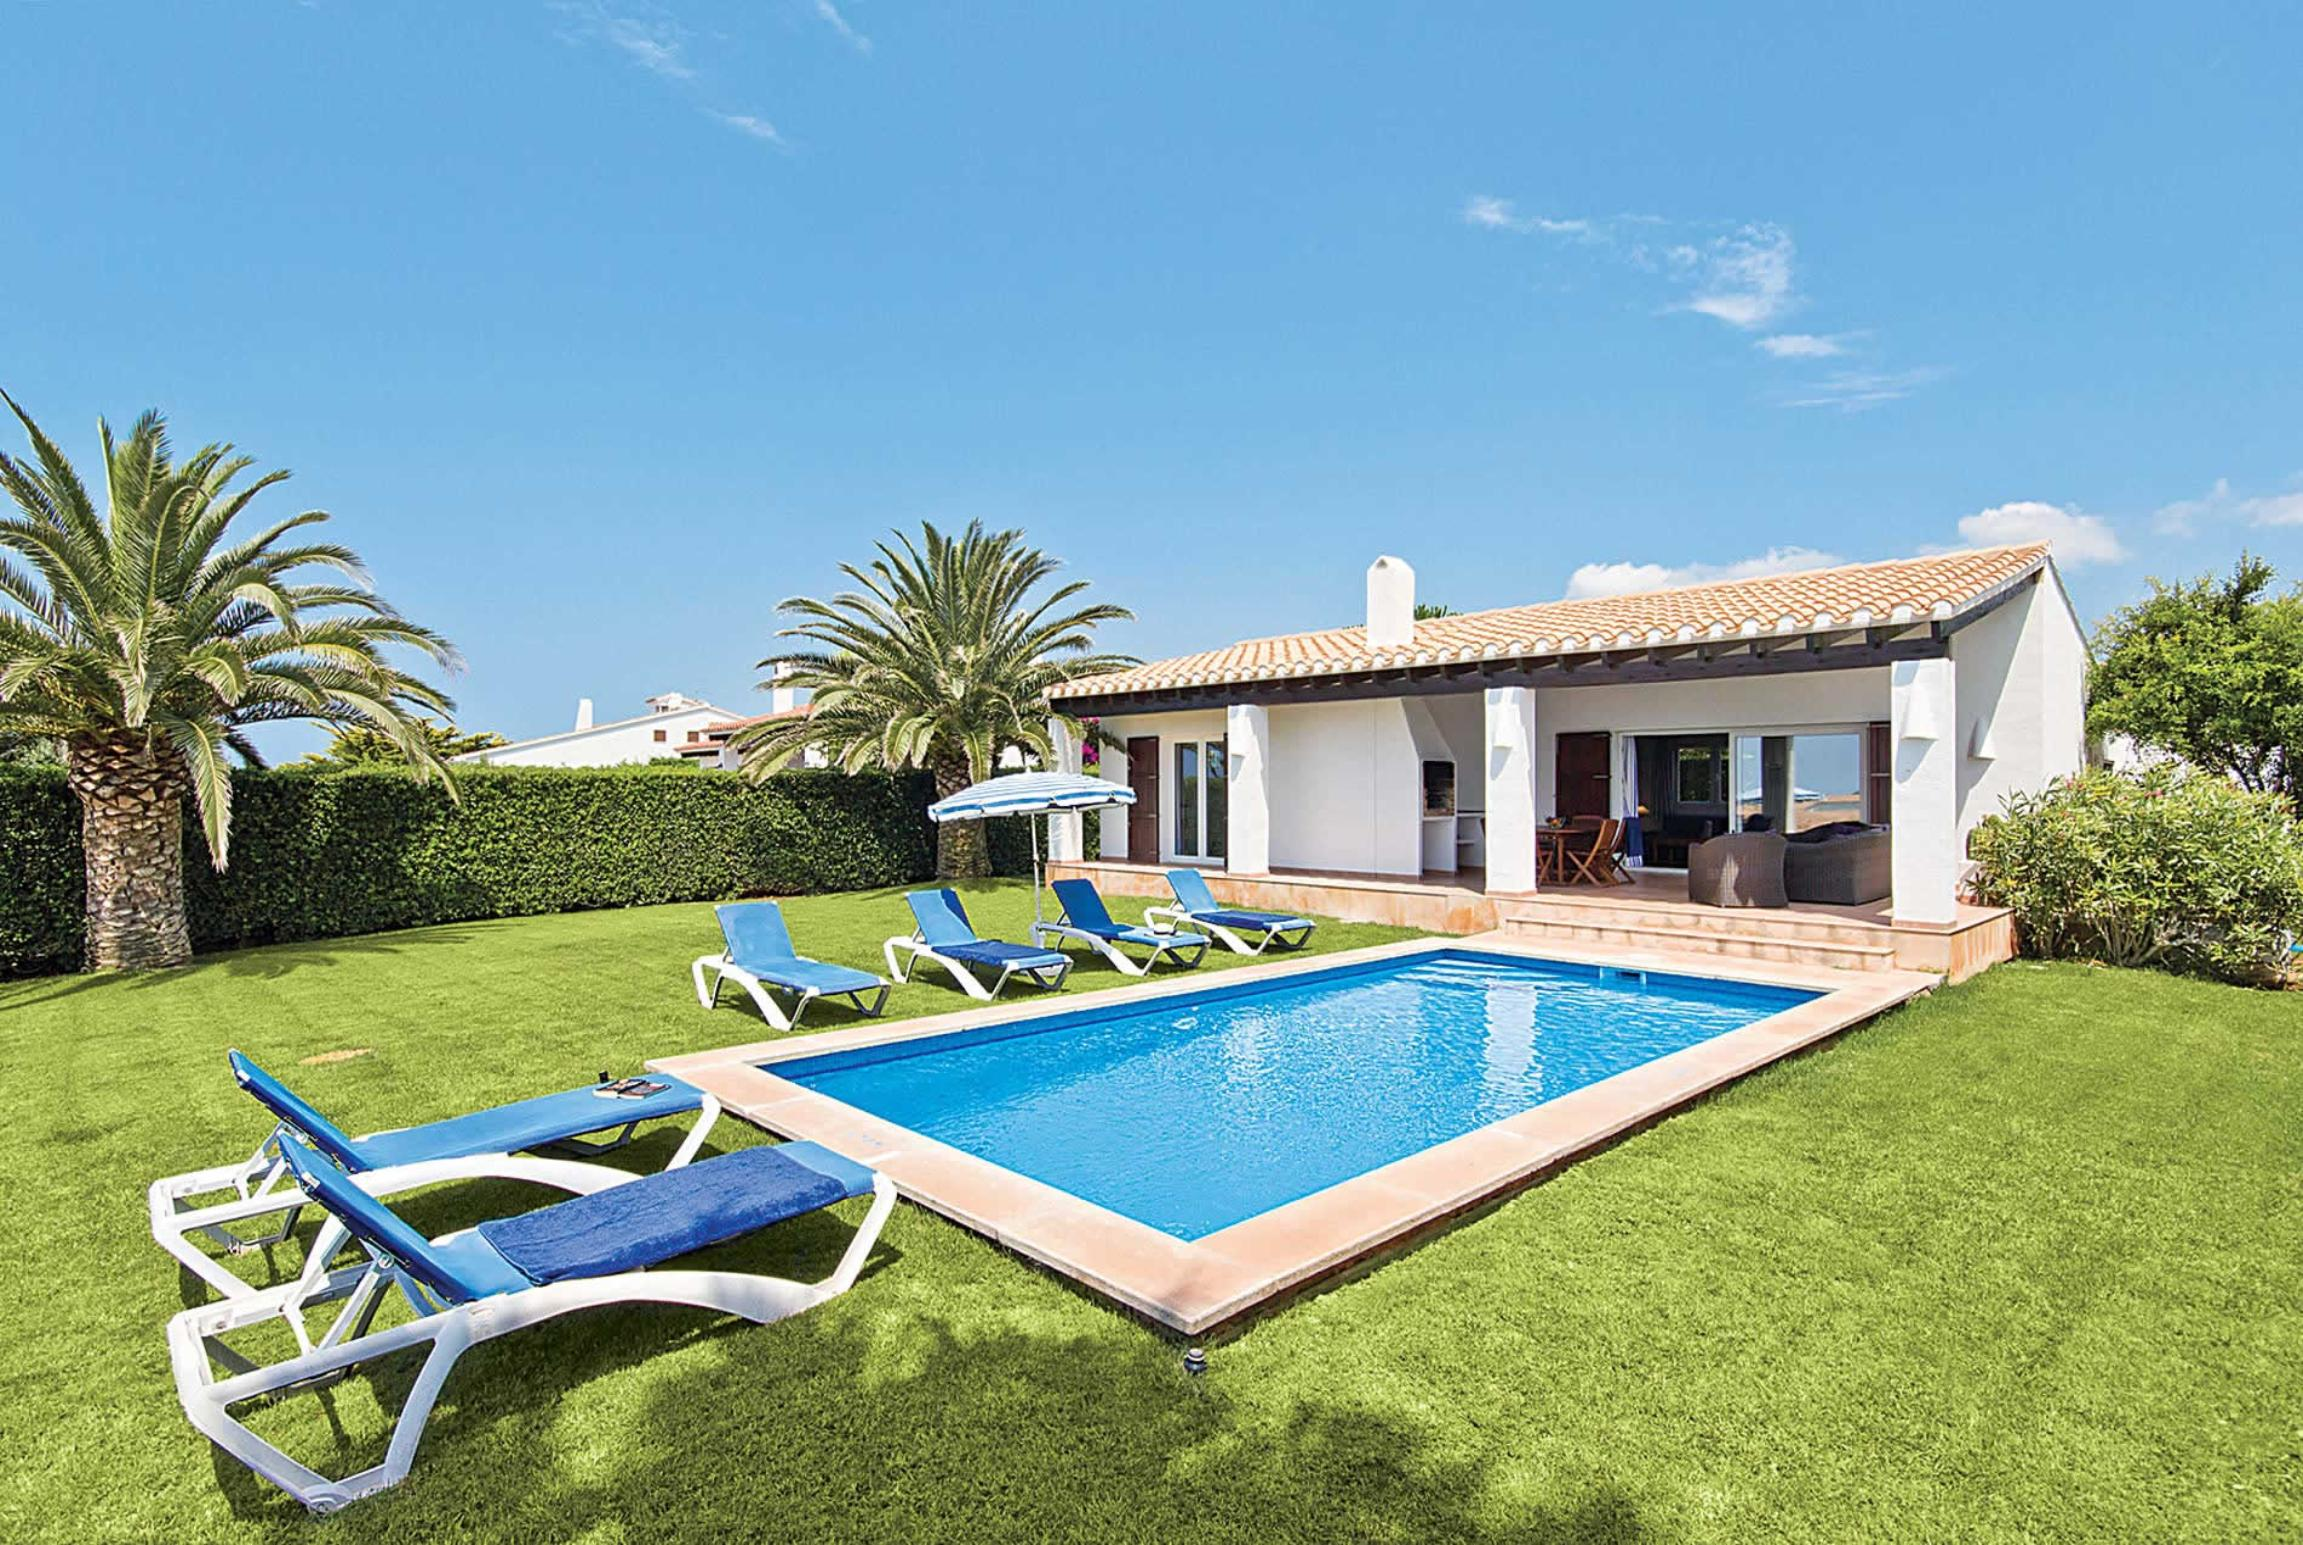 Read more about Sonrisa villa